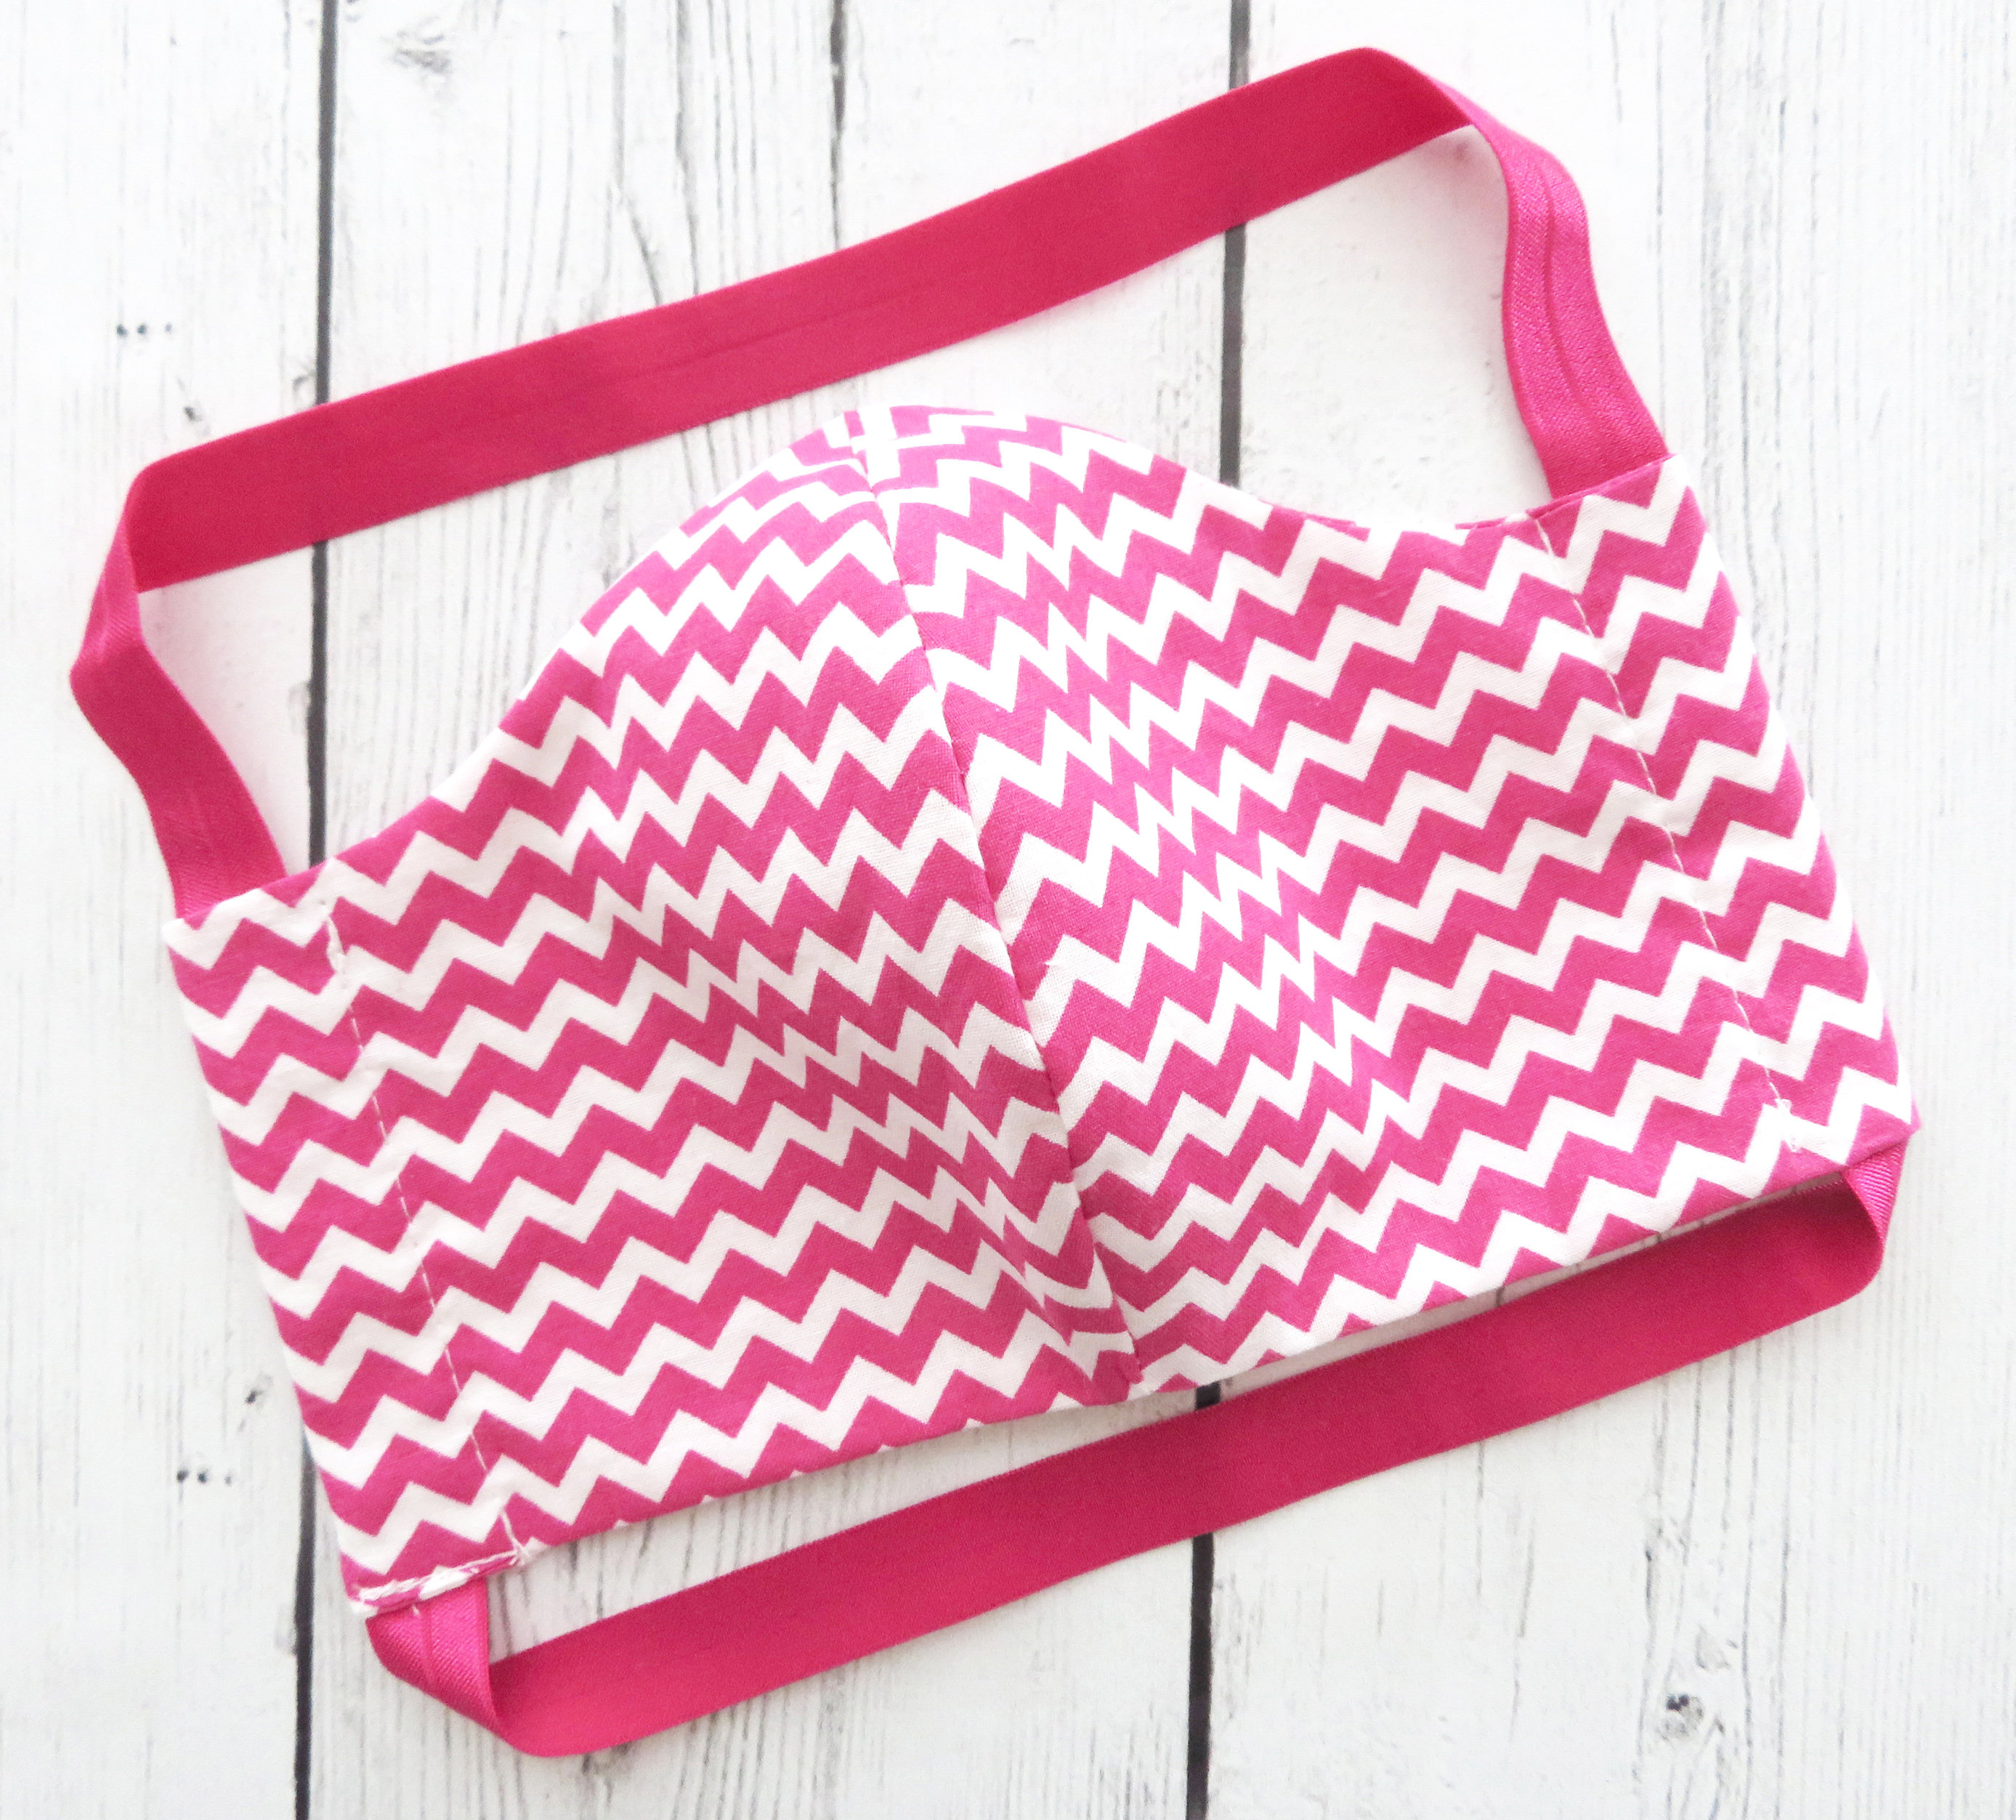 Face Mask in Hot Pink Chevron - READY TO SHIP from usa! handmade cotton face mask for adult, designer face mask, washable and re-usable